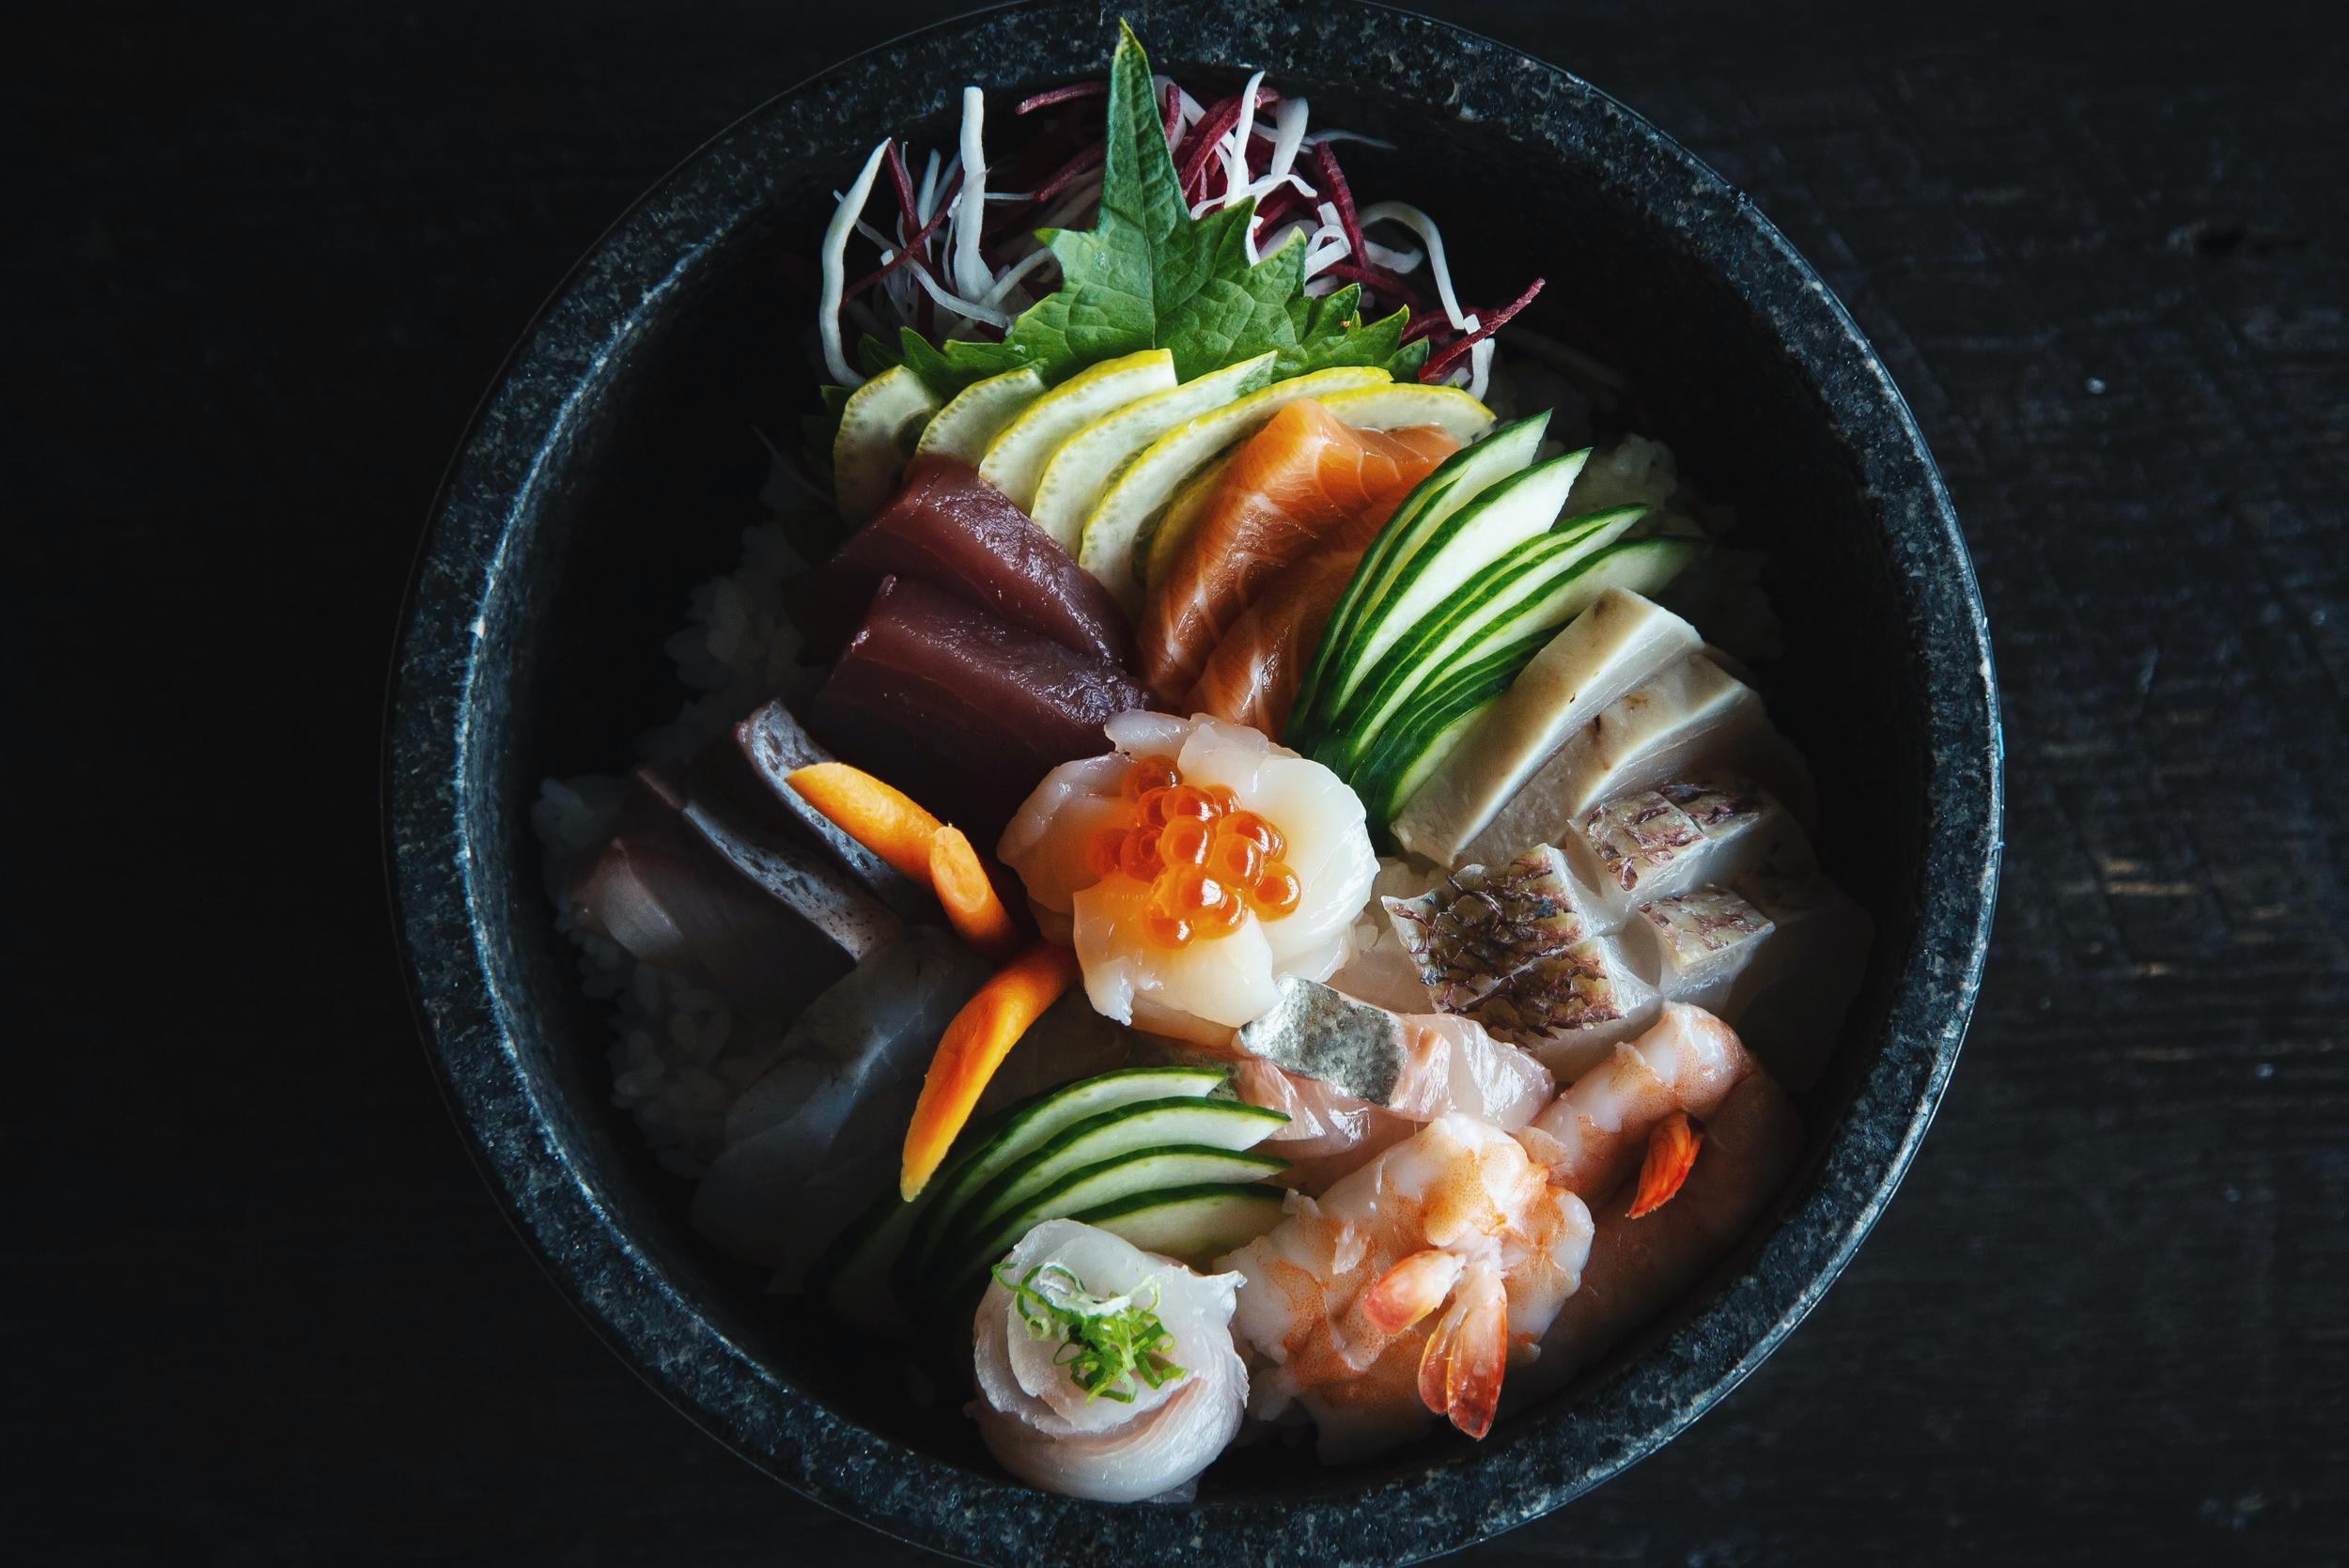 A plate of sushi and veggies arranged beautifully.